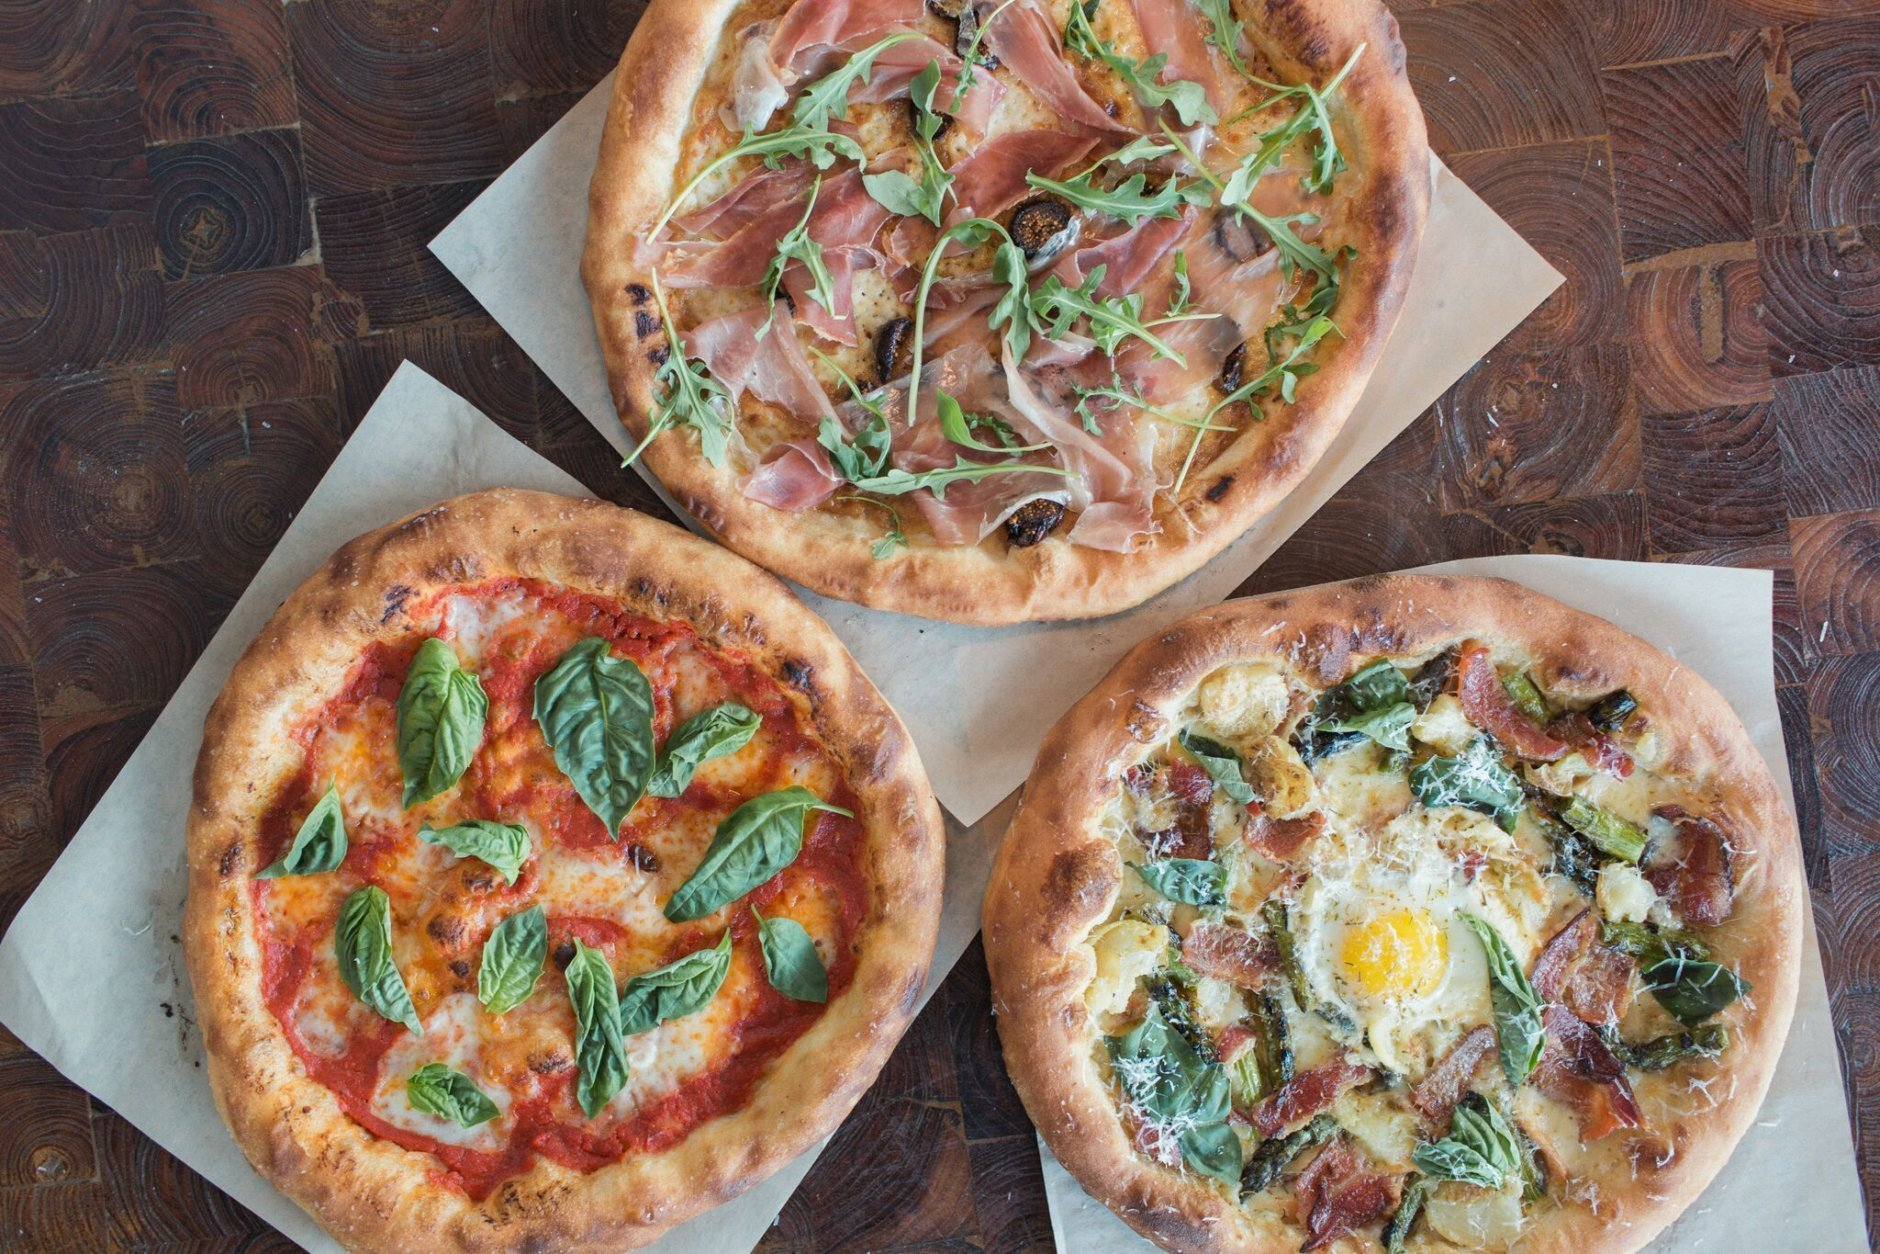 North Italia will be an upscale, full-service restaurant, whose menu includes dishes handmade from scratch daily. (Photo courtesy of Fox Restaurant Concepts)